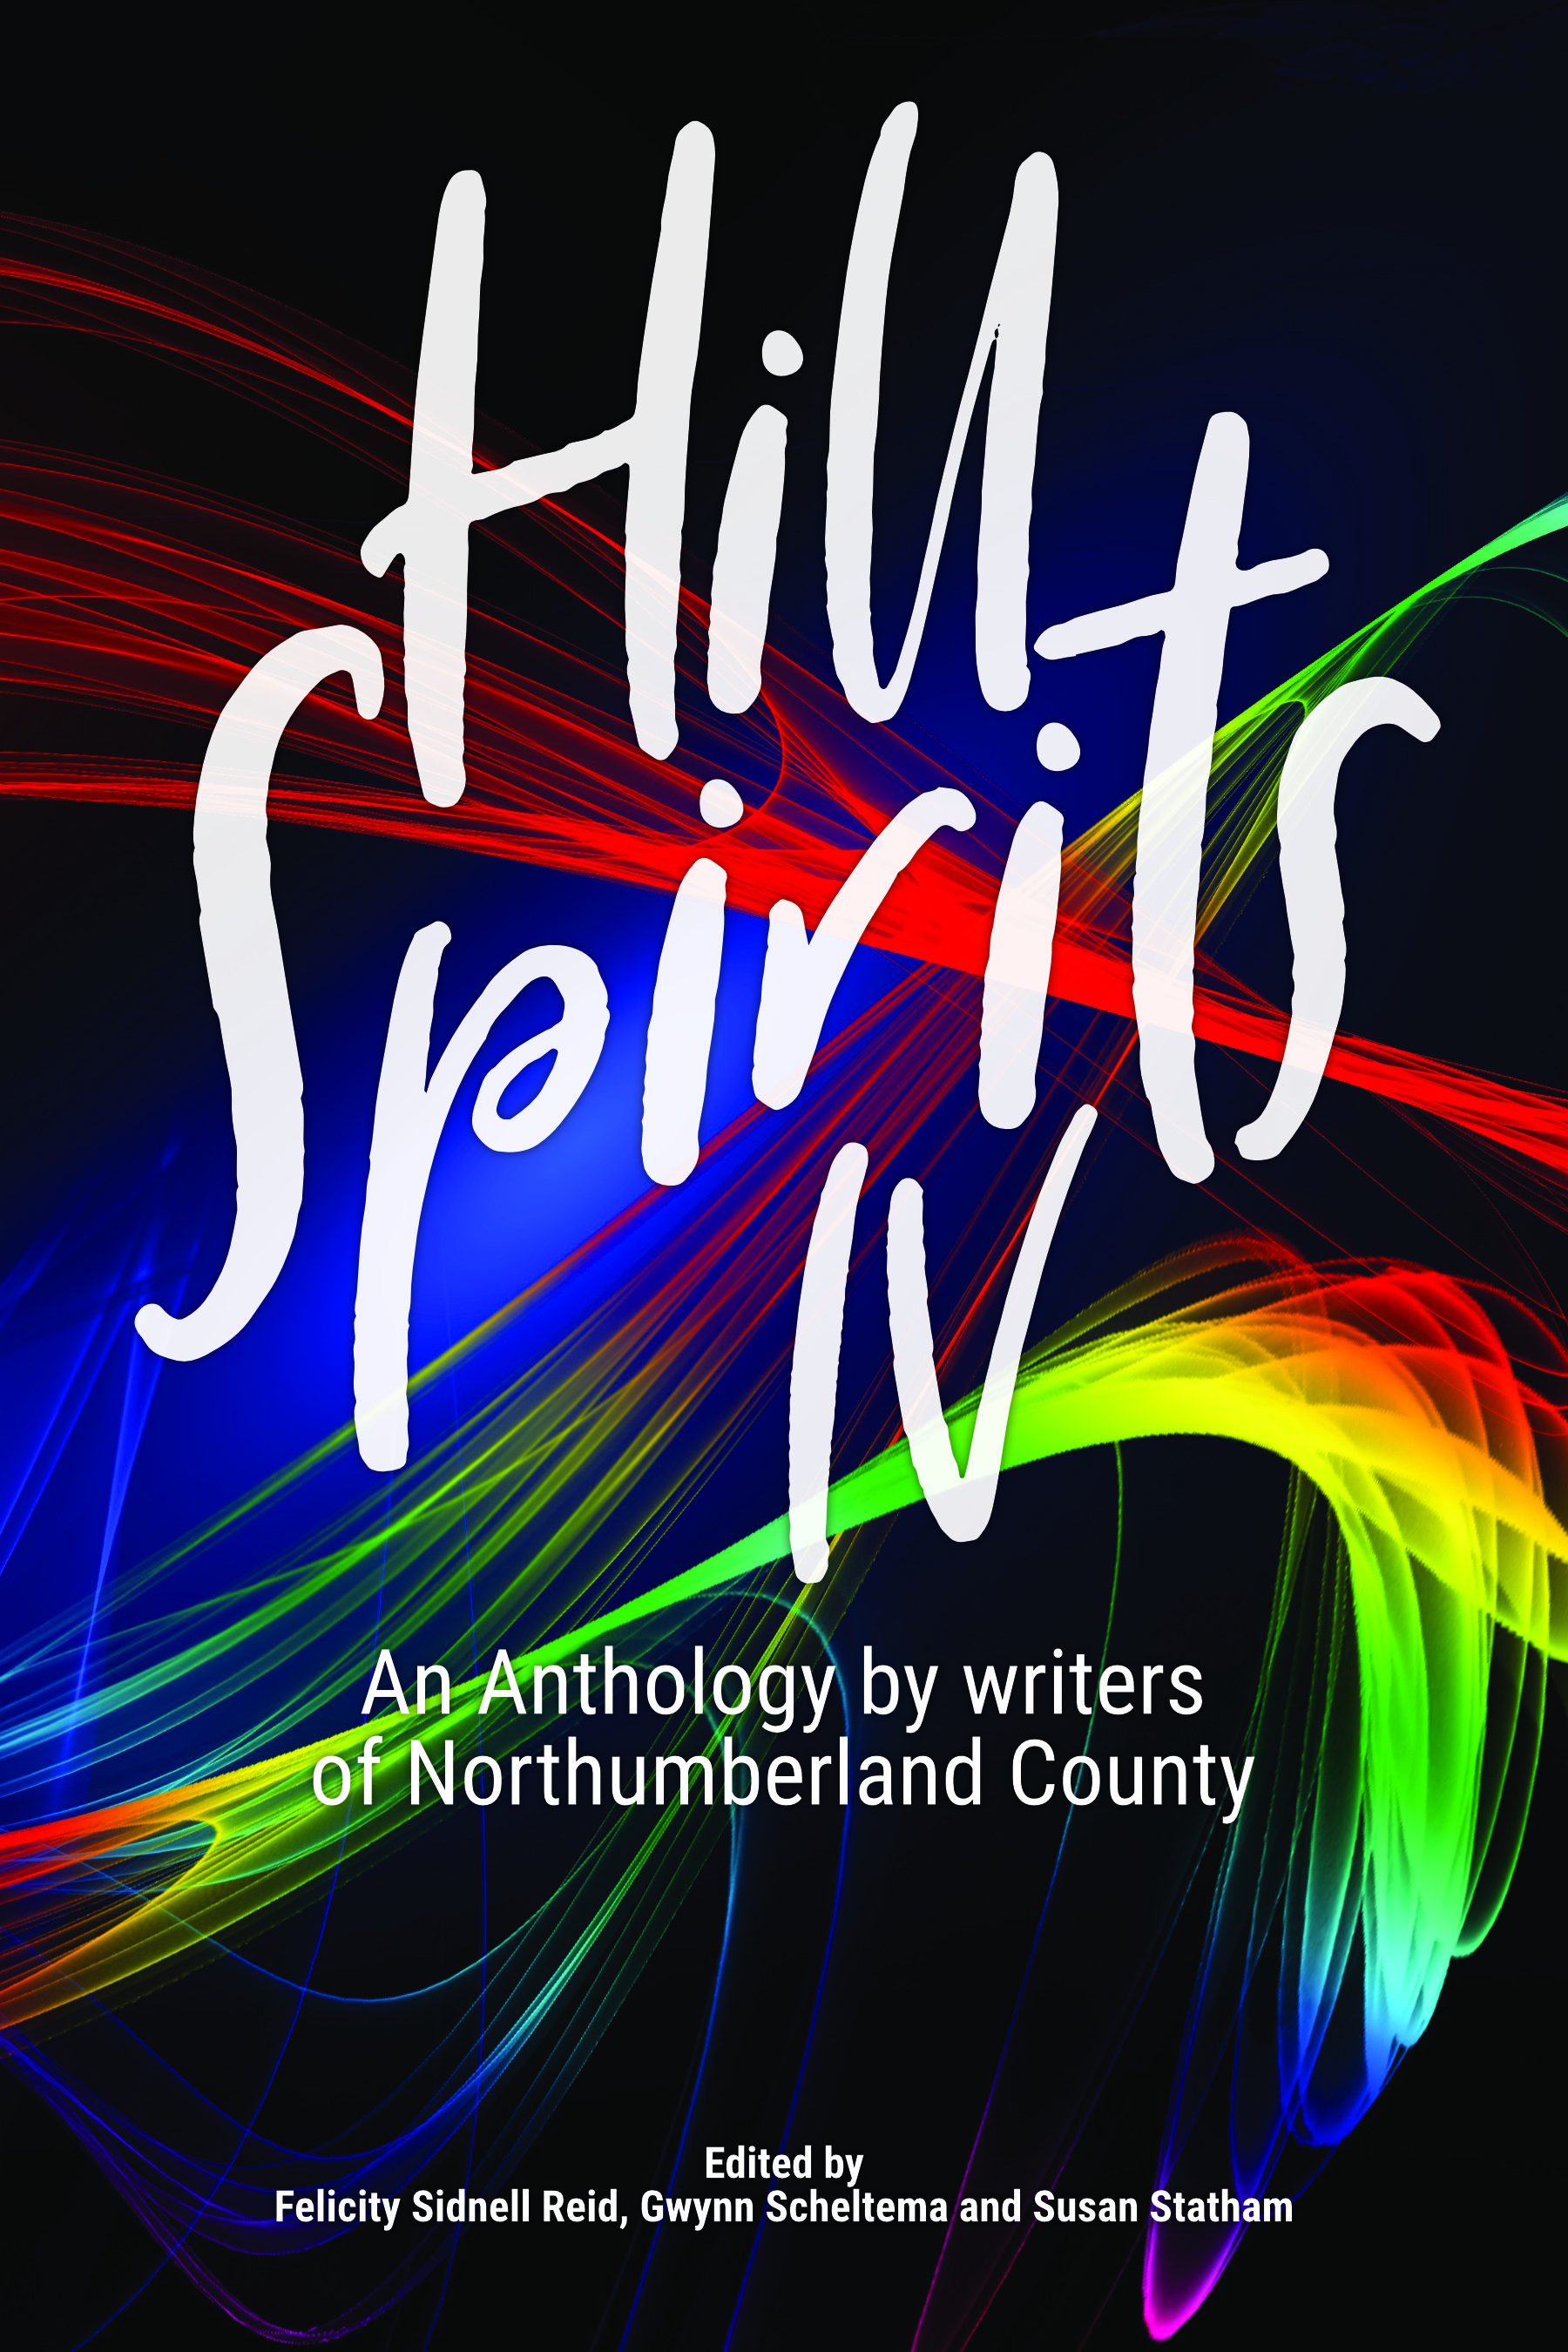 Hill Spirits IV